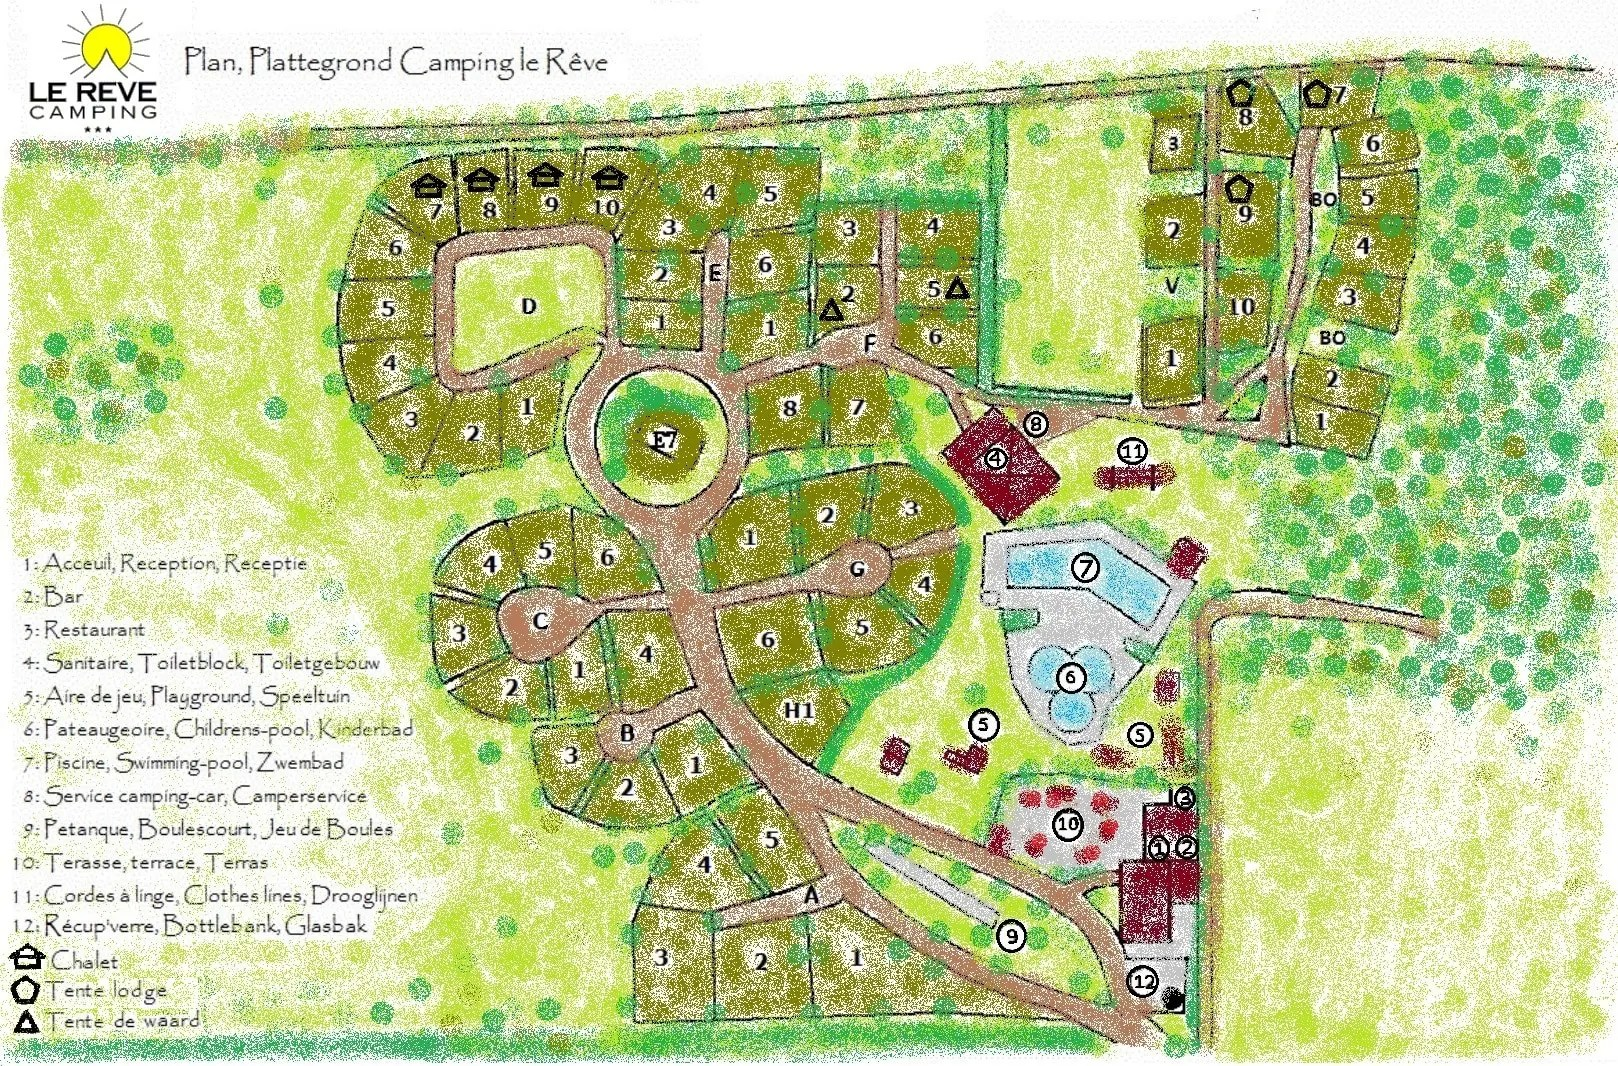 Camping Amalfikust Zwembad Map Of The Campsite 8ha Park Camping Le Rêve Lot France